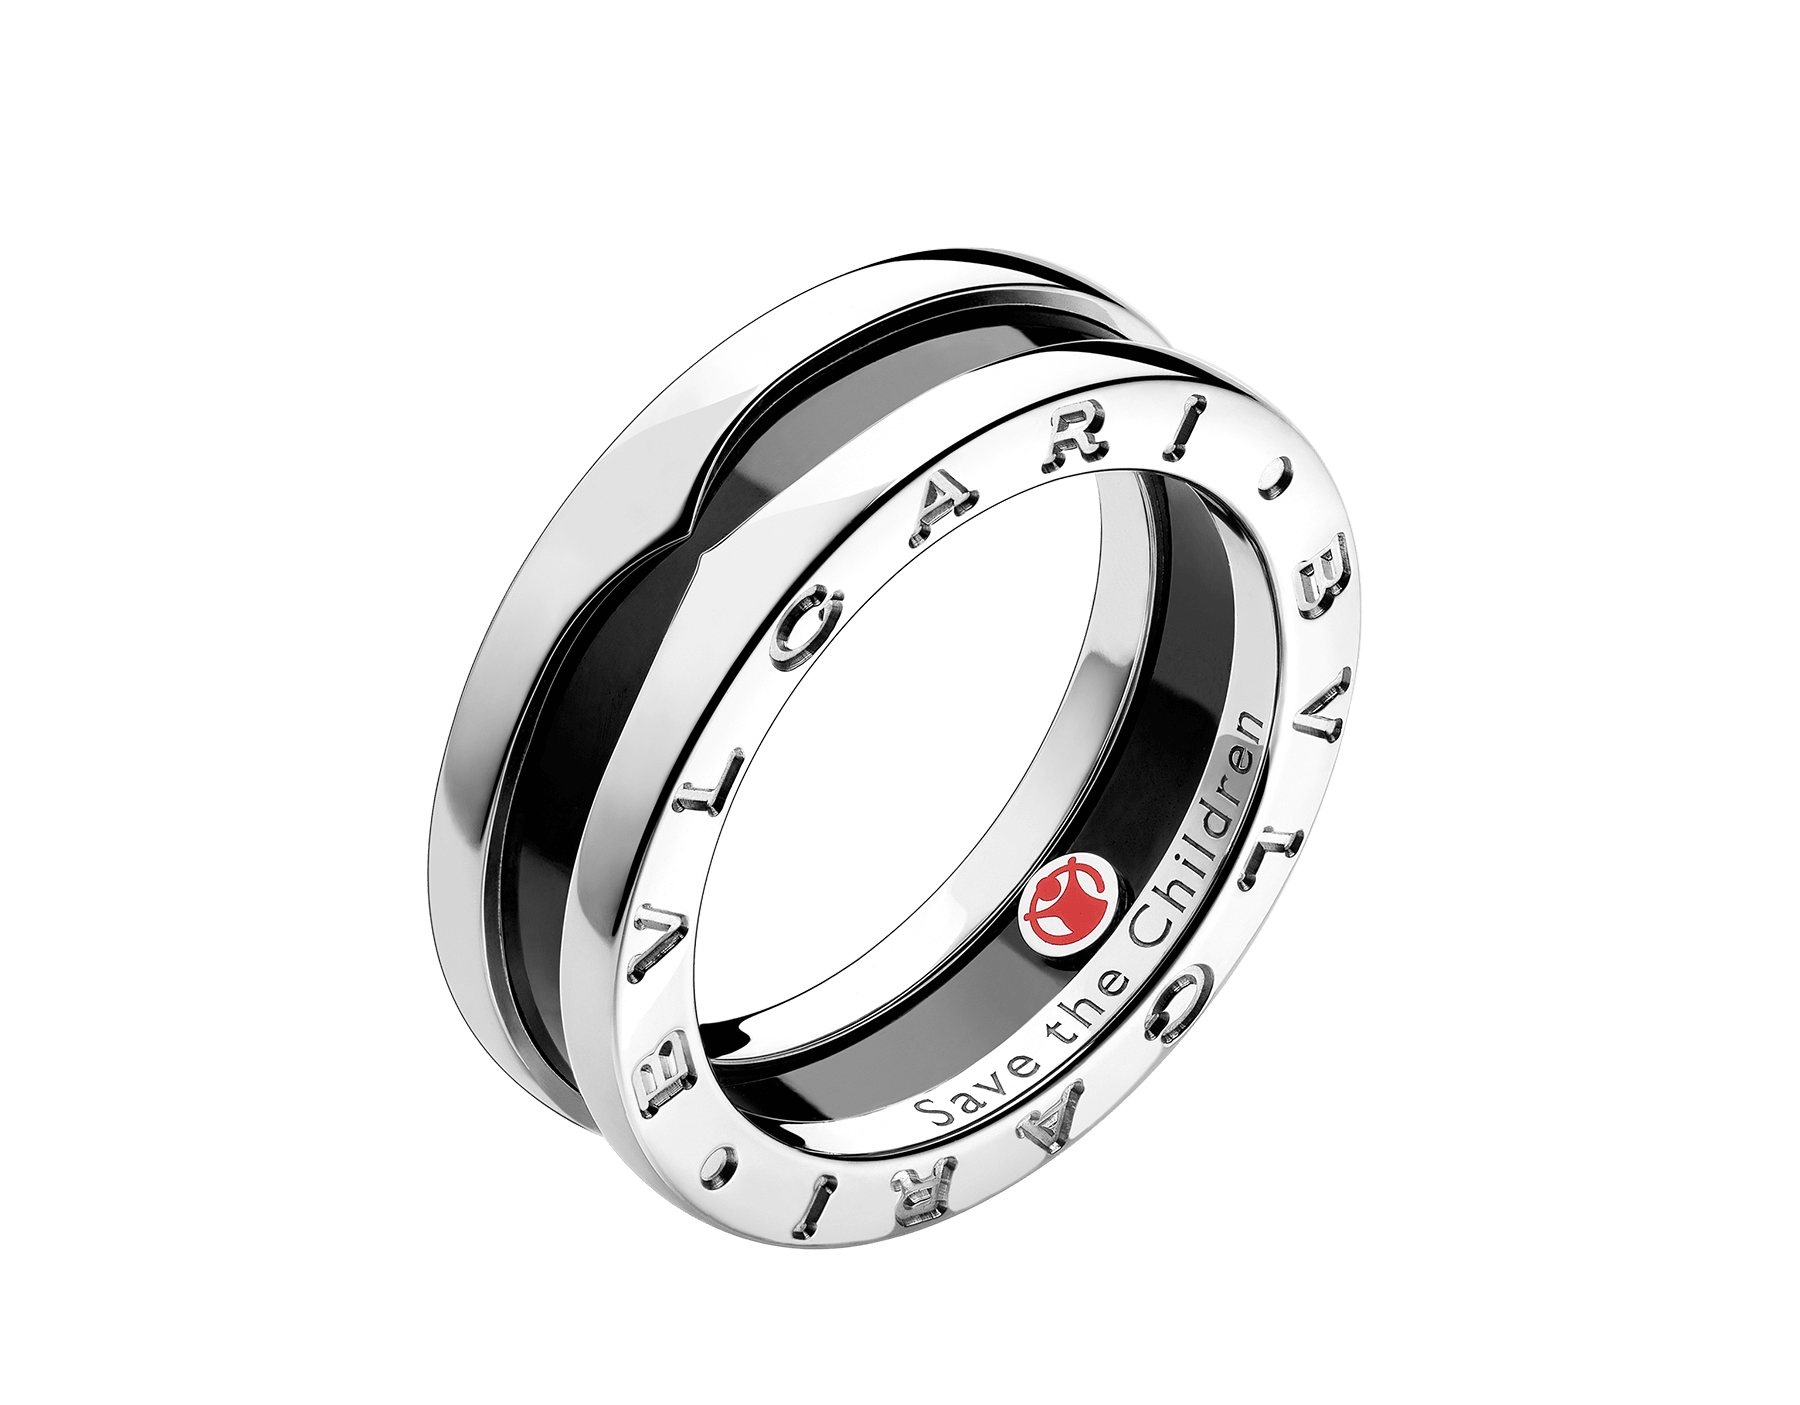 Anello a fascia Save the Children in argento 925 e ceramica nera. AN855770 image 1